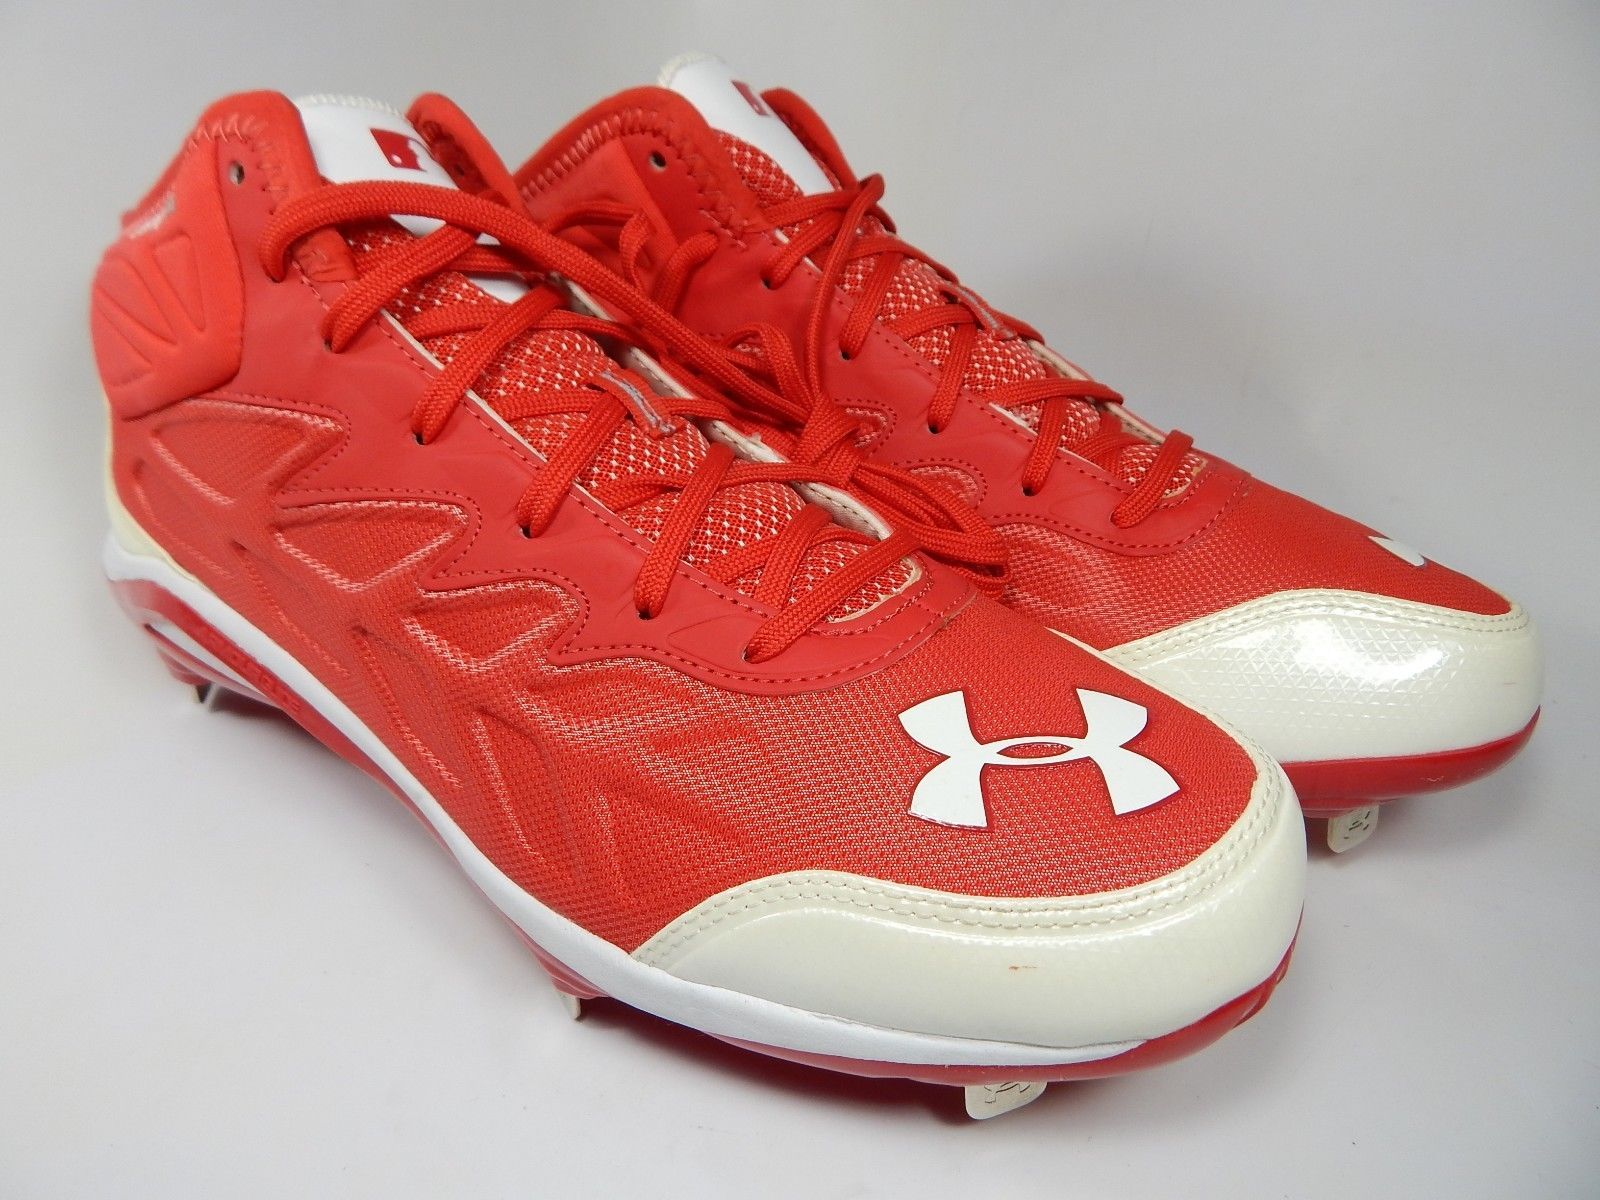 Under Armour Heater ST Mid Top Sz 13 M EU 47.5 Metal Baseball Cleats 1248197-611